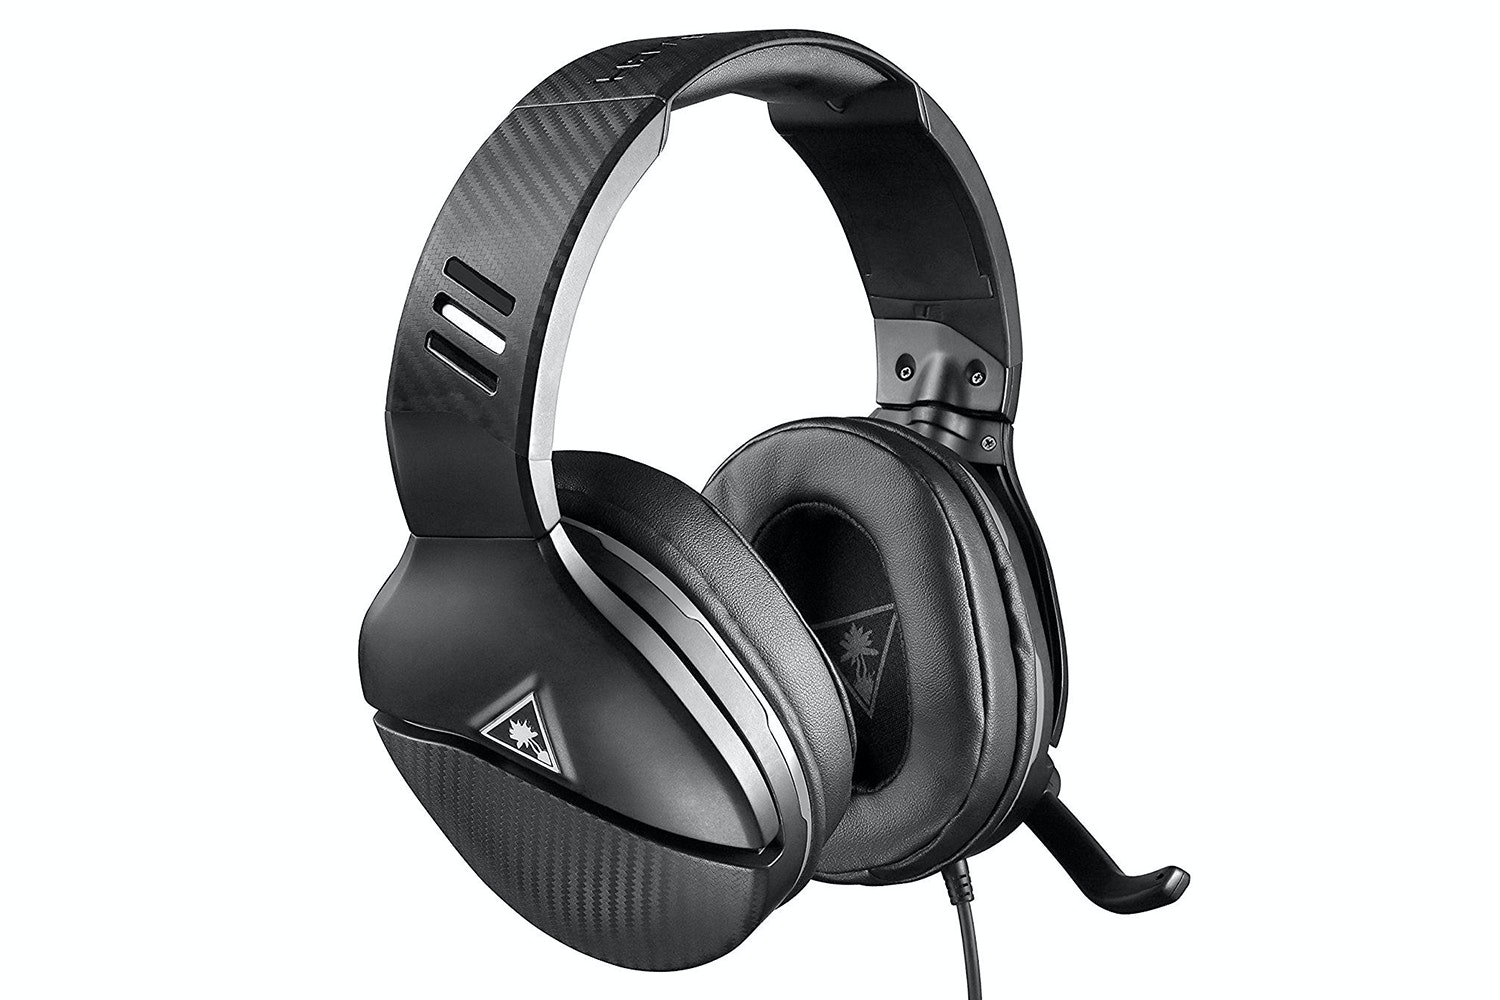 Turtle beach recon 200 headset mic not working xbox one